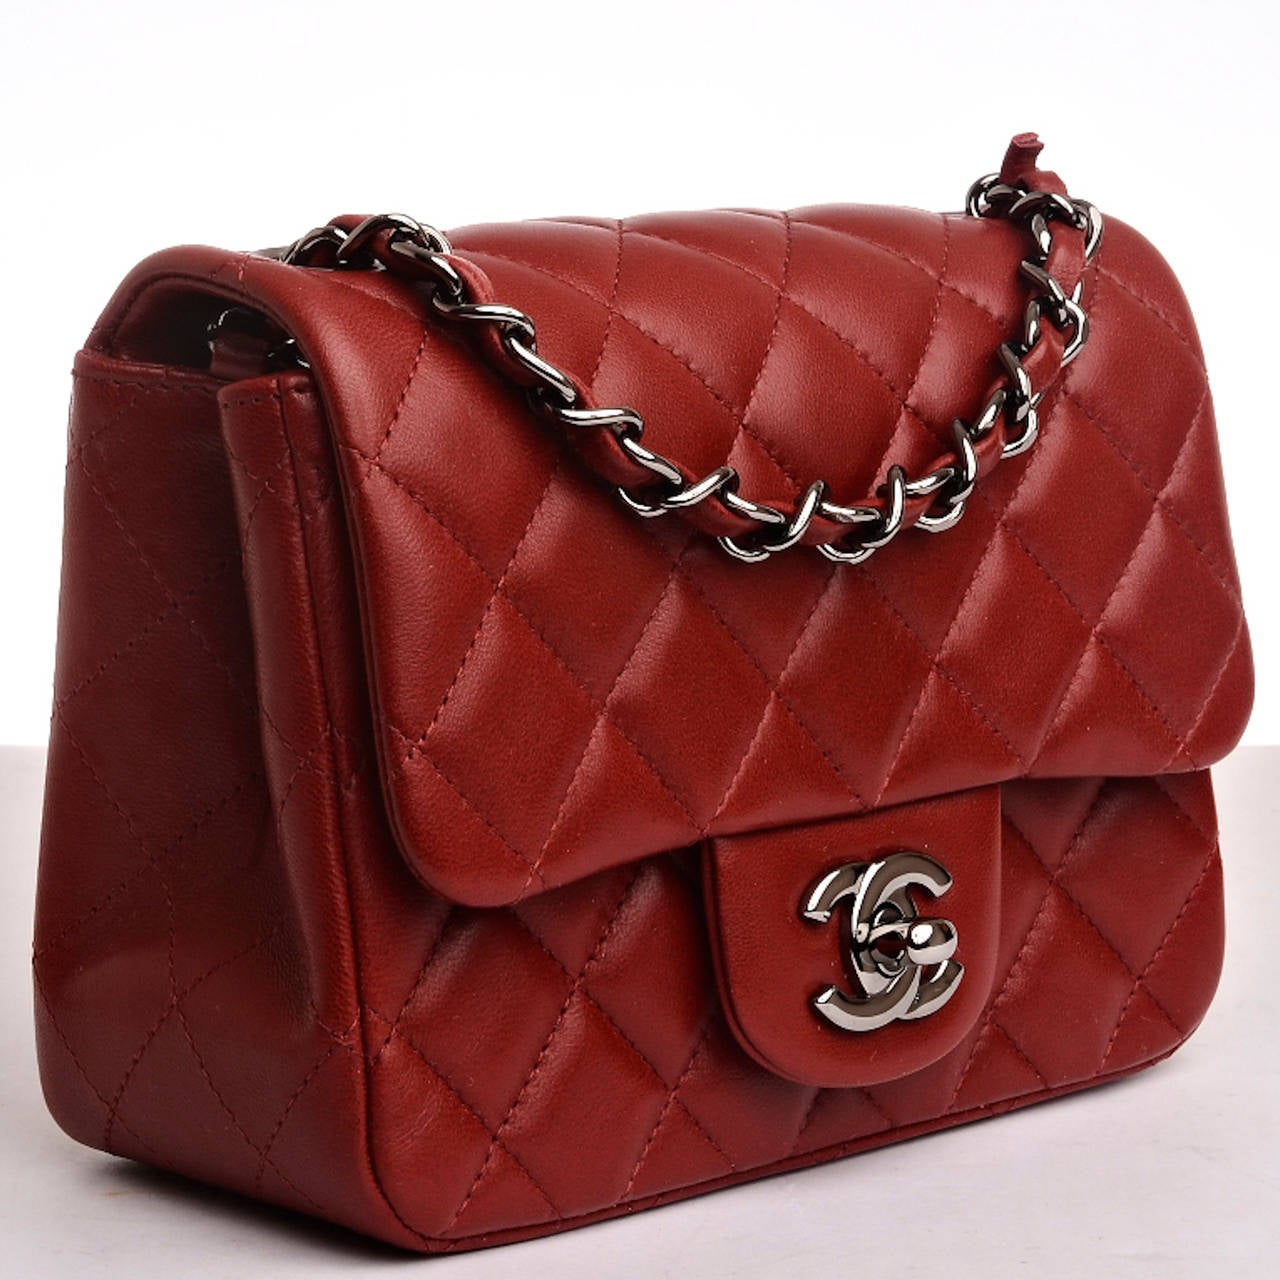 9f582c69186f Chanel Red Mini Flap Bag Price | Stanford Center for Opportunity ...